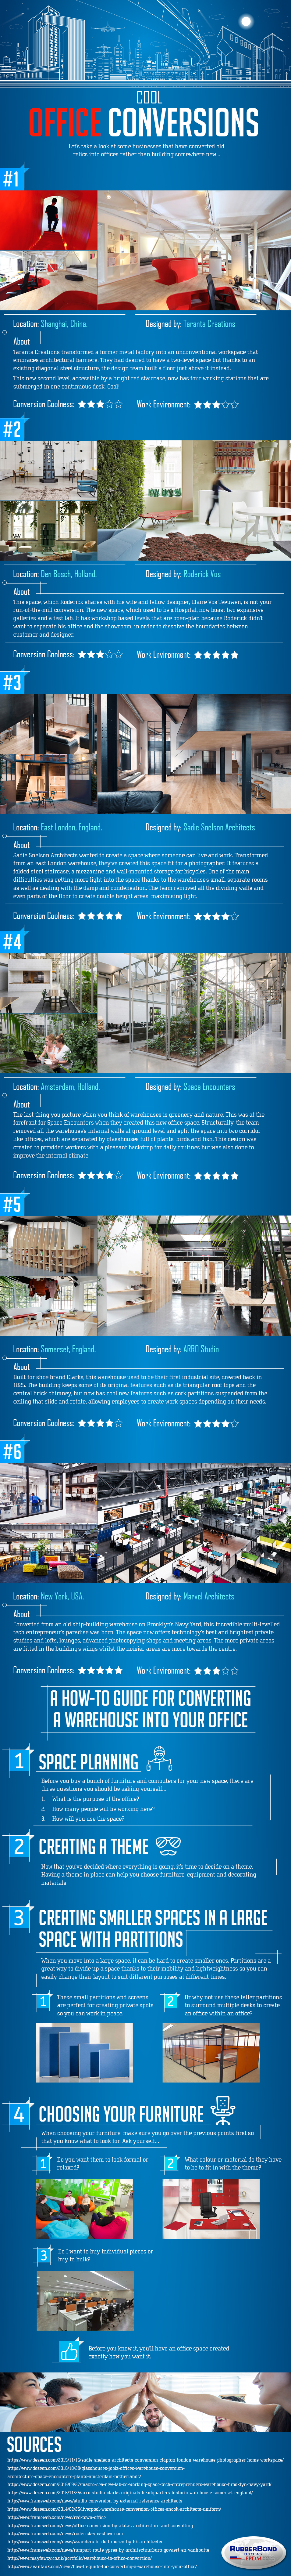 The Most Stunning Office Renovations - Infographic